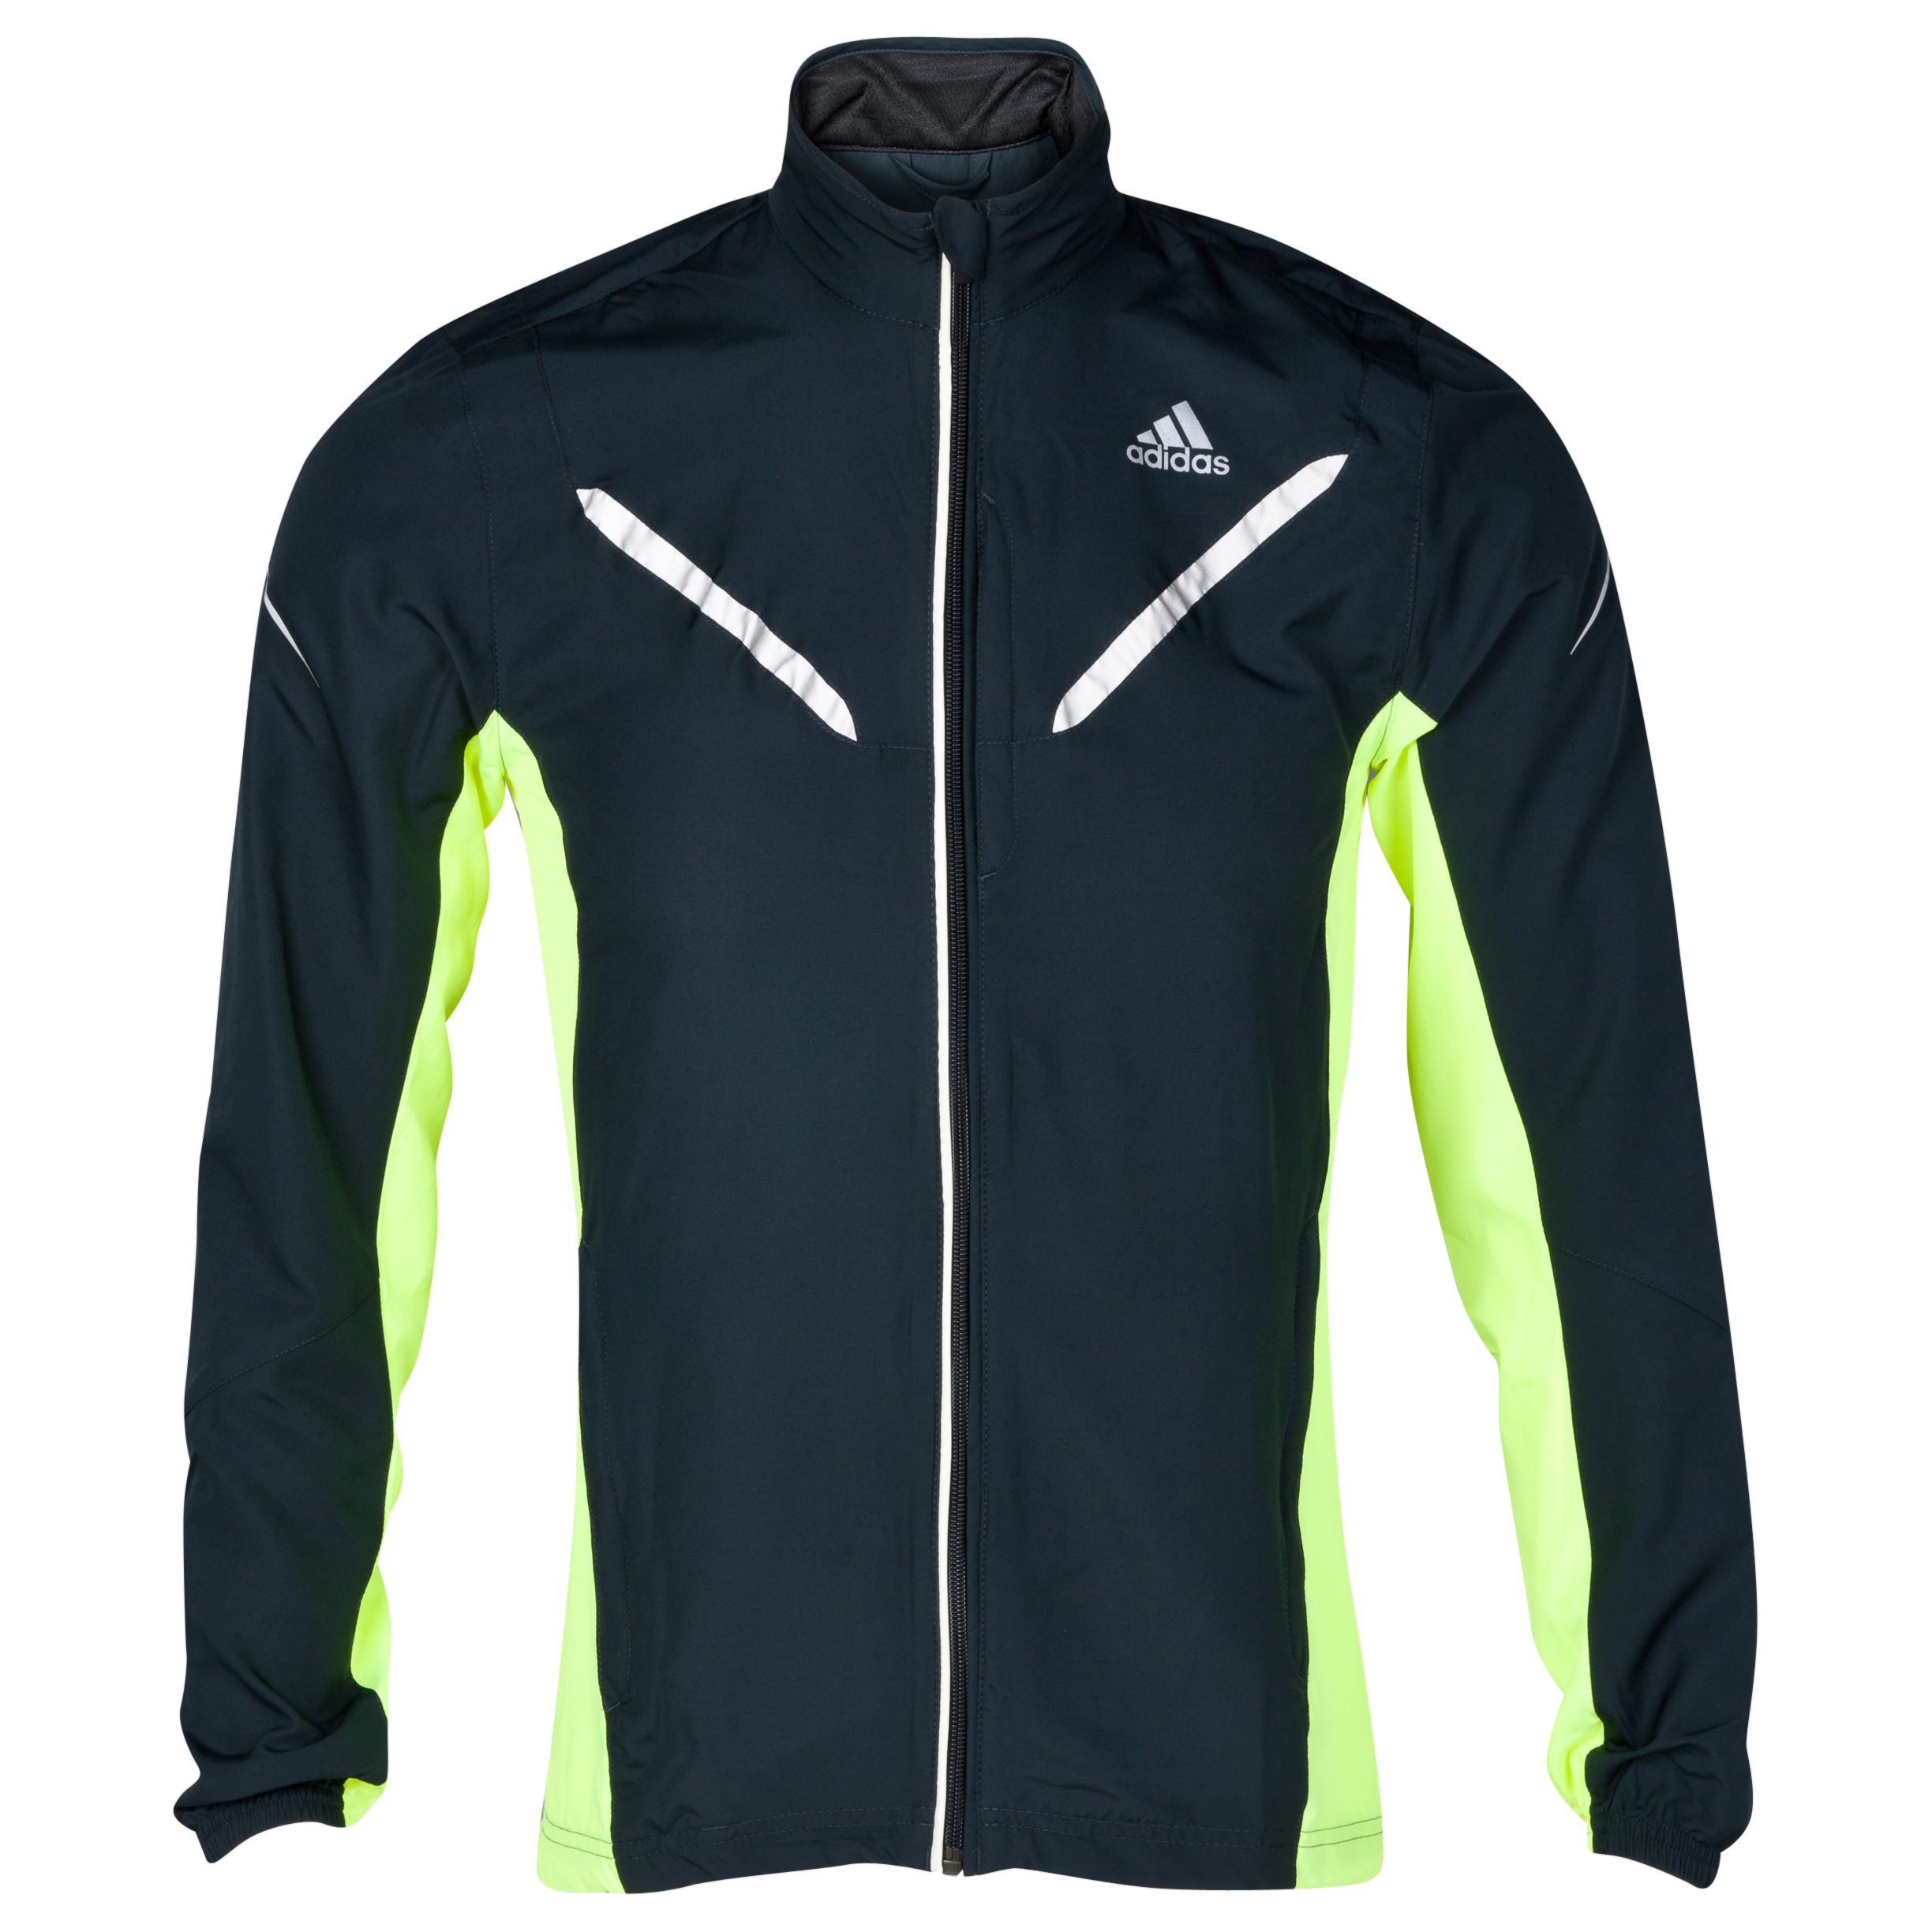 Adidas Sequentials Jacket - Tech Onix/Electricity